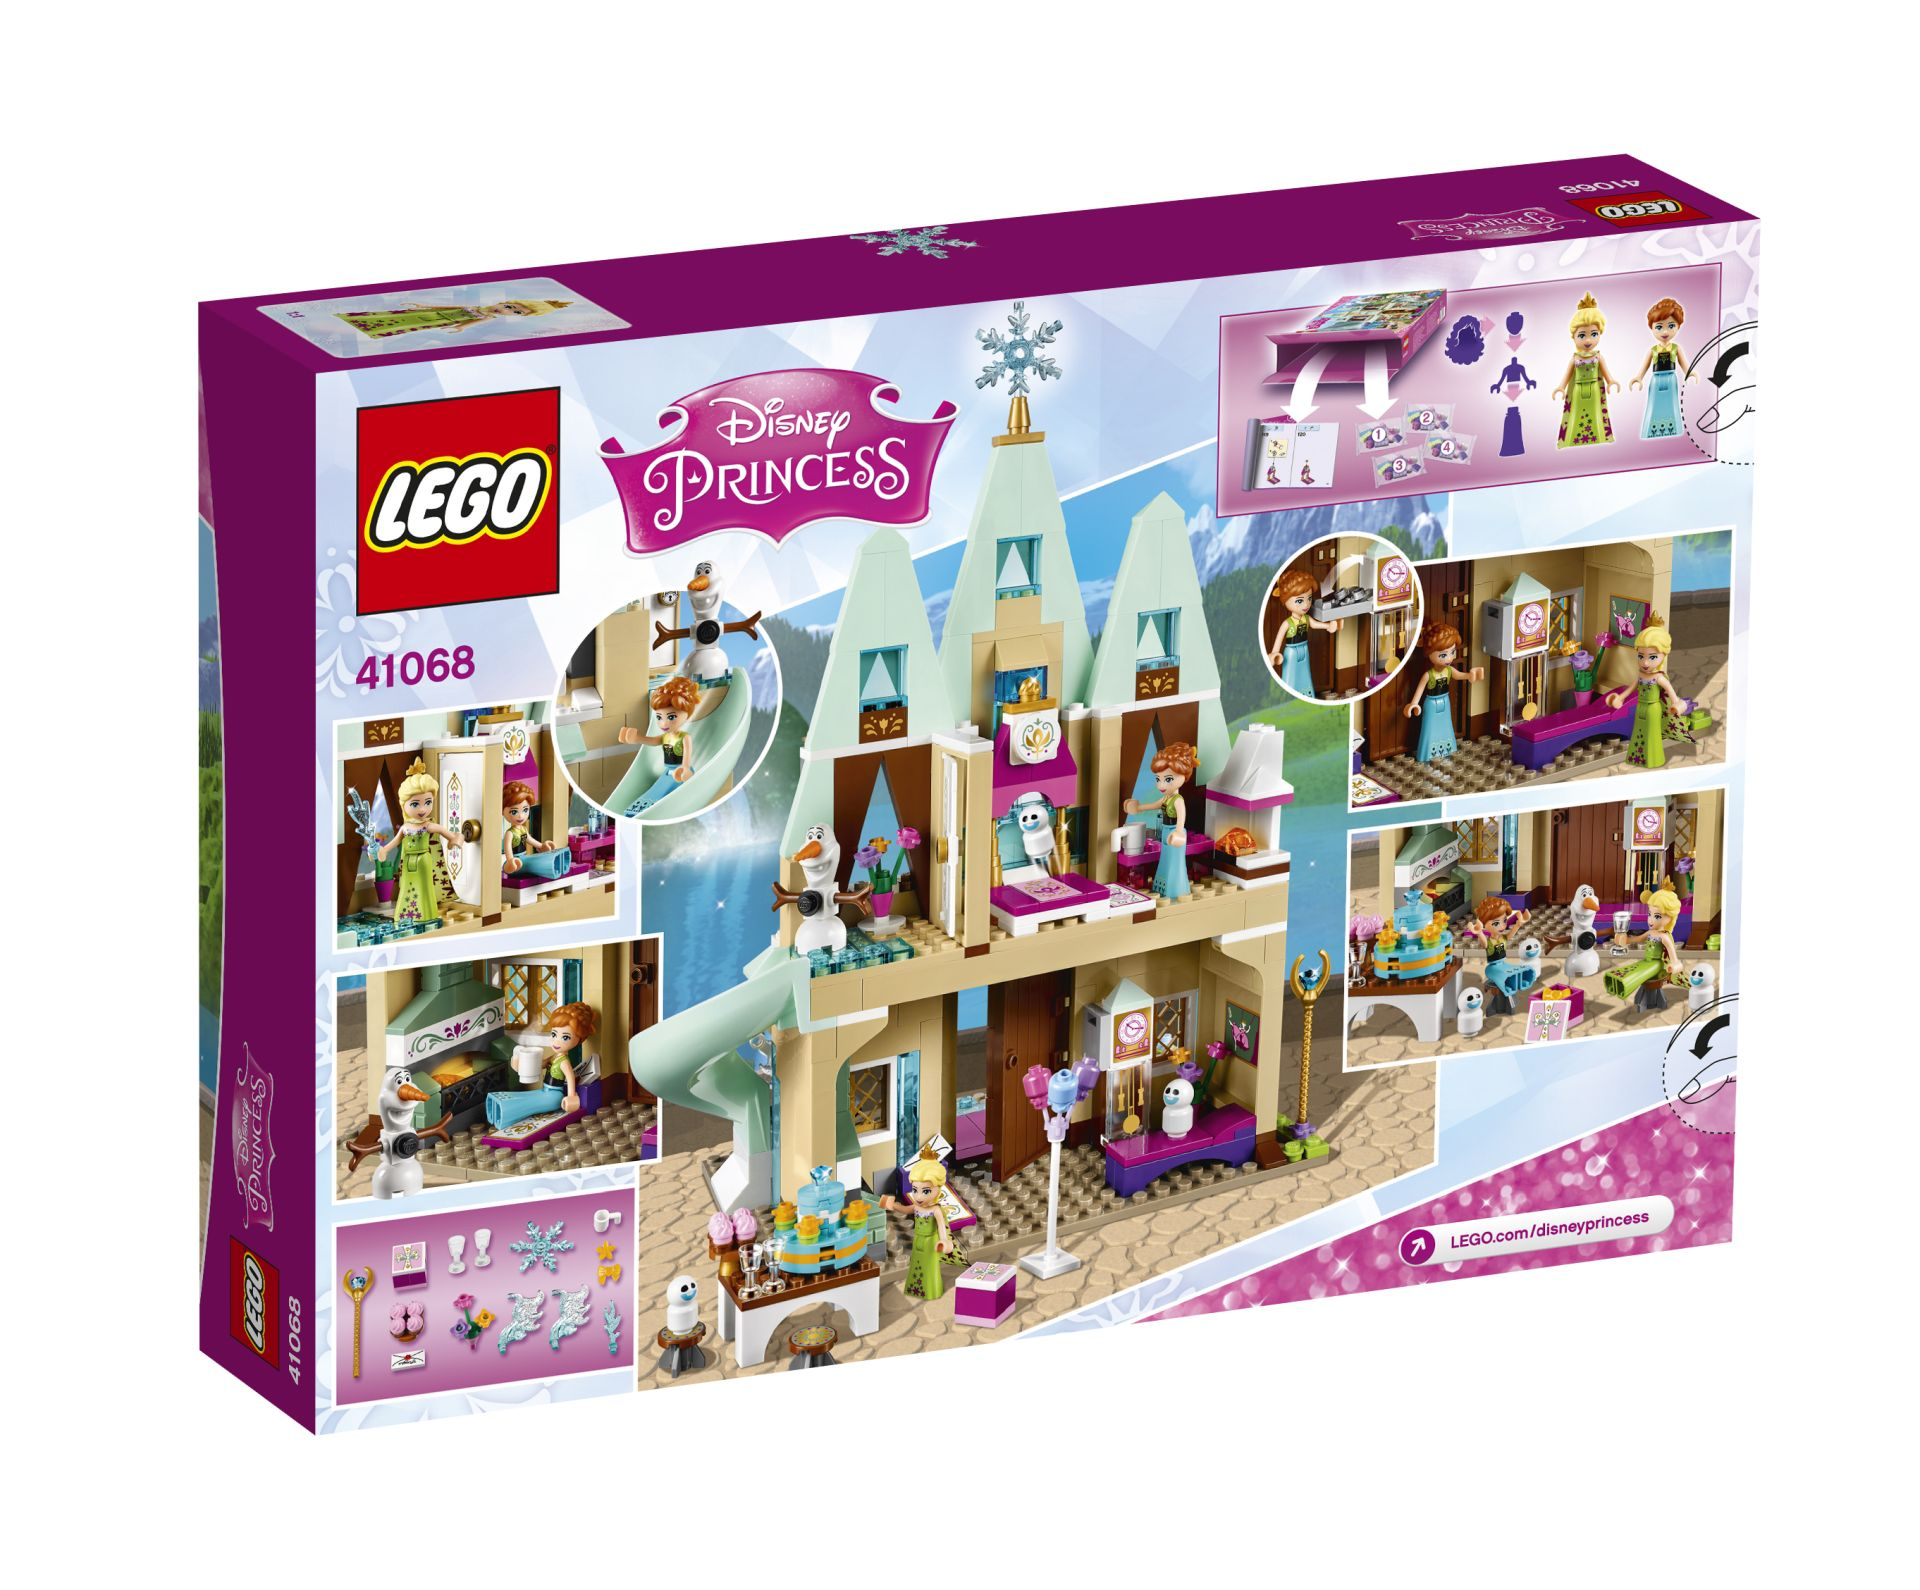 LEGO Disney Princess party in a big castle by Arendelle ...